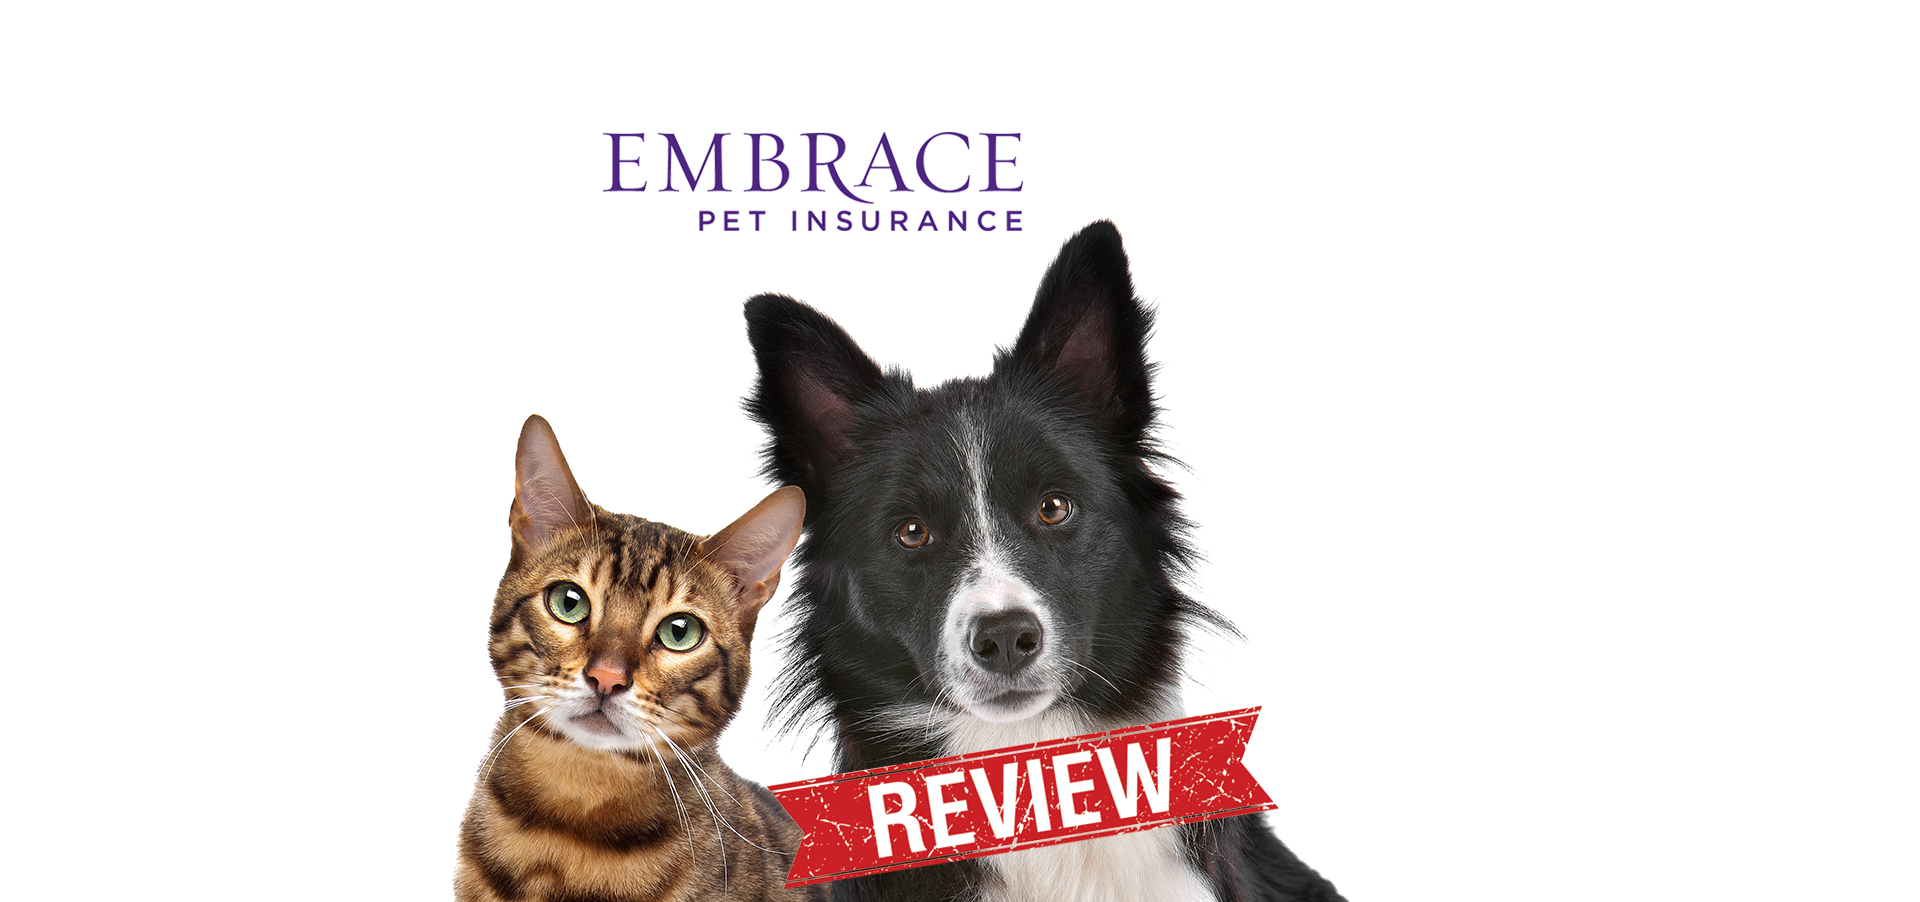 Embrace pet insurance reviews are overwhelmingly positive